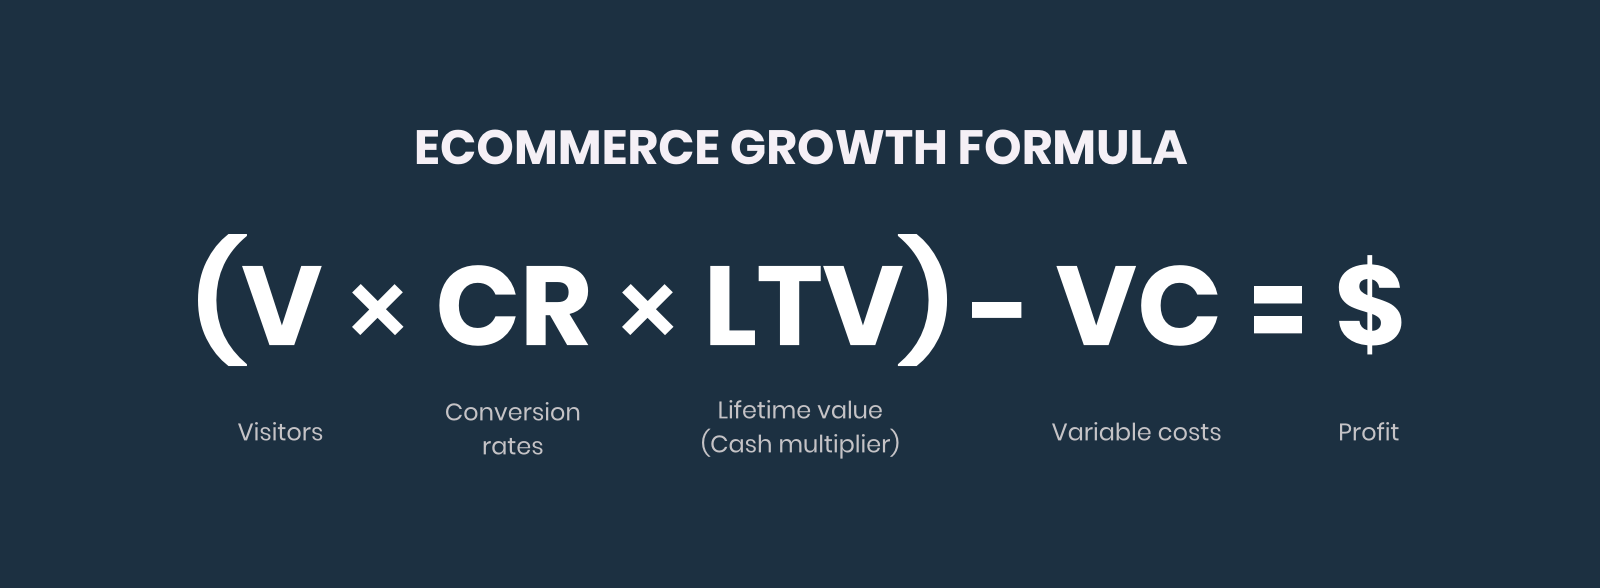 Ecommerce Growth Formula: Visitors times Conversion Rate times Lifetime Value (Cash Multiplier, or 60-day LTV) minus Variable Costs equals Profit